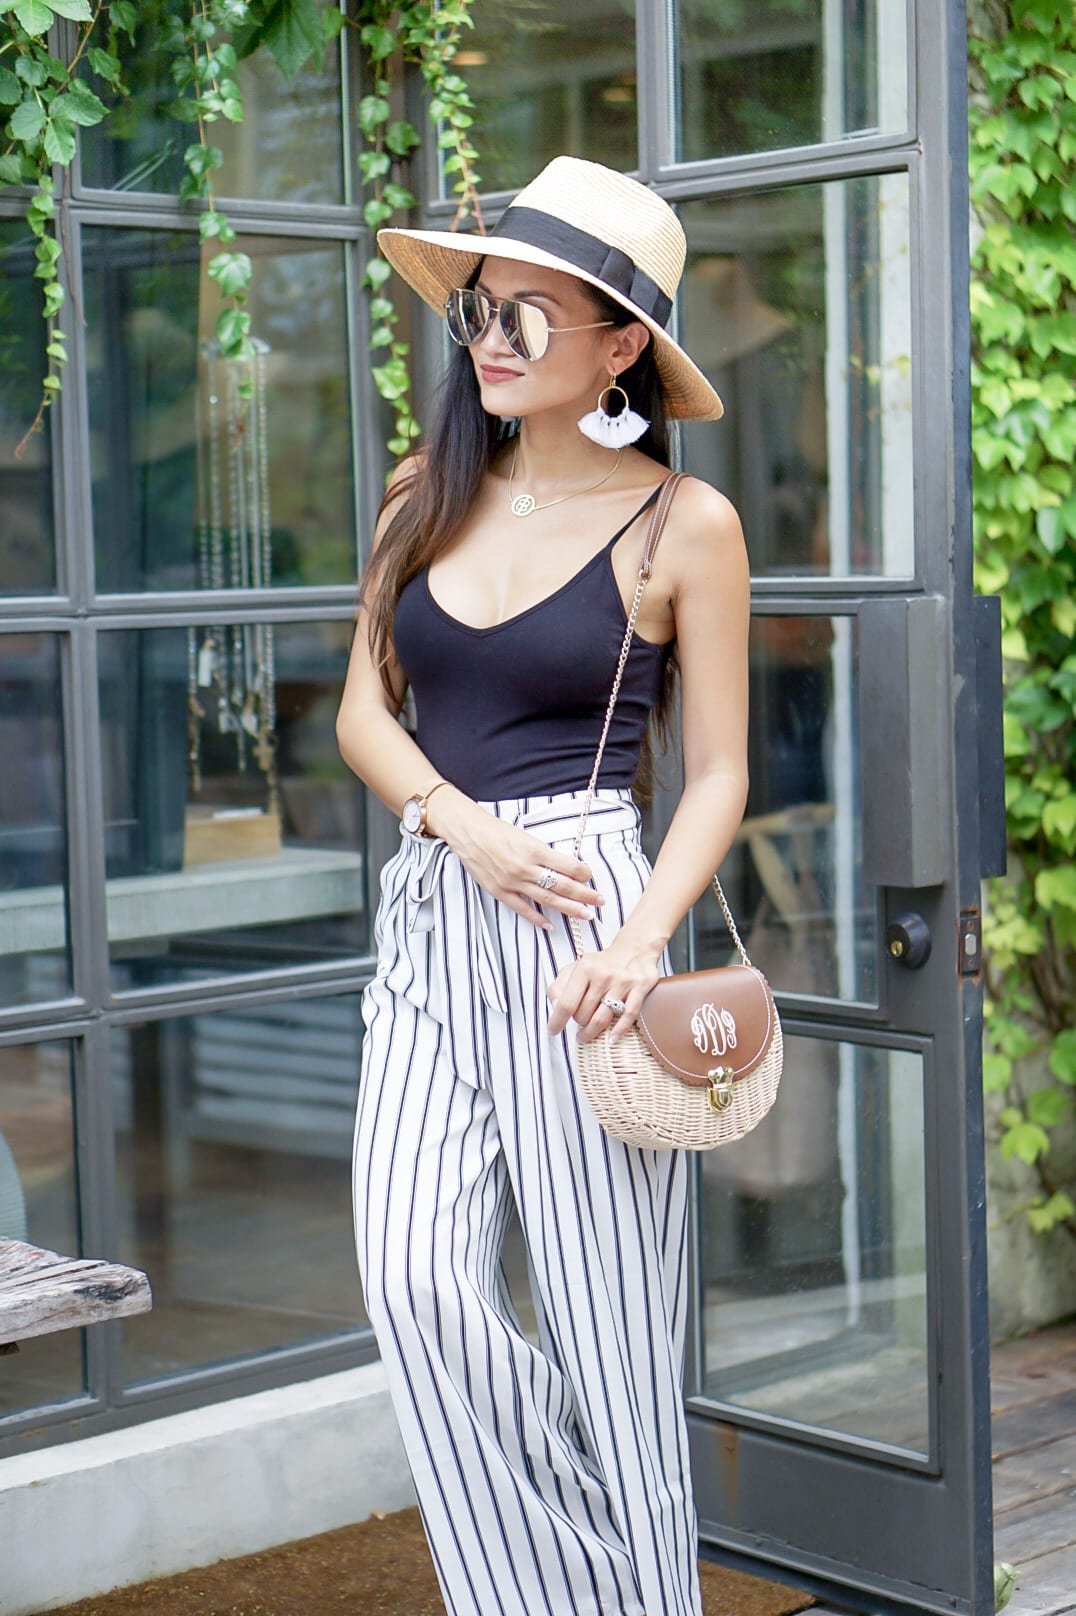 $10 bodysuit, bodysuit, black body suit, #affordablefashion, striped pants, striped culottes, quay sunglasses, tassel earrings, Lisi Lerch, monogrammed straw bag